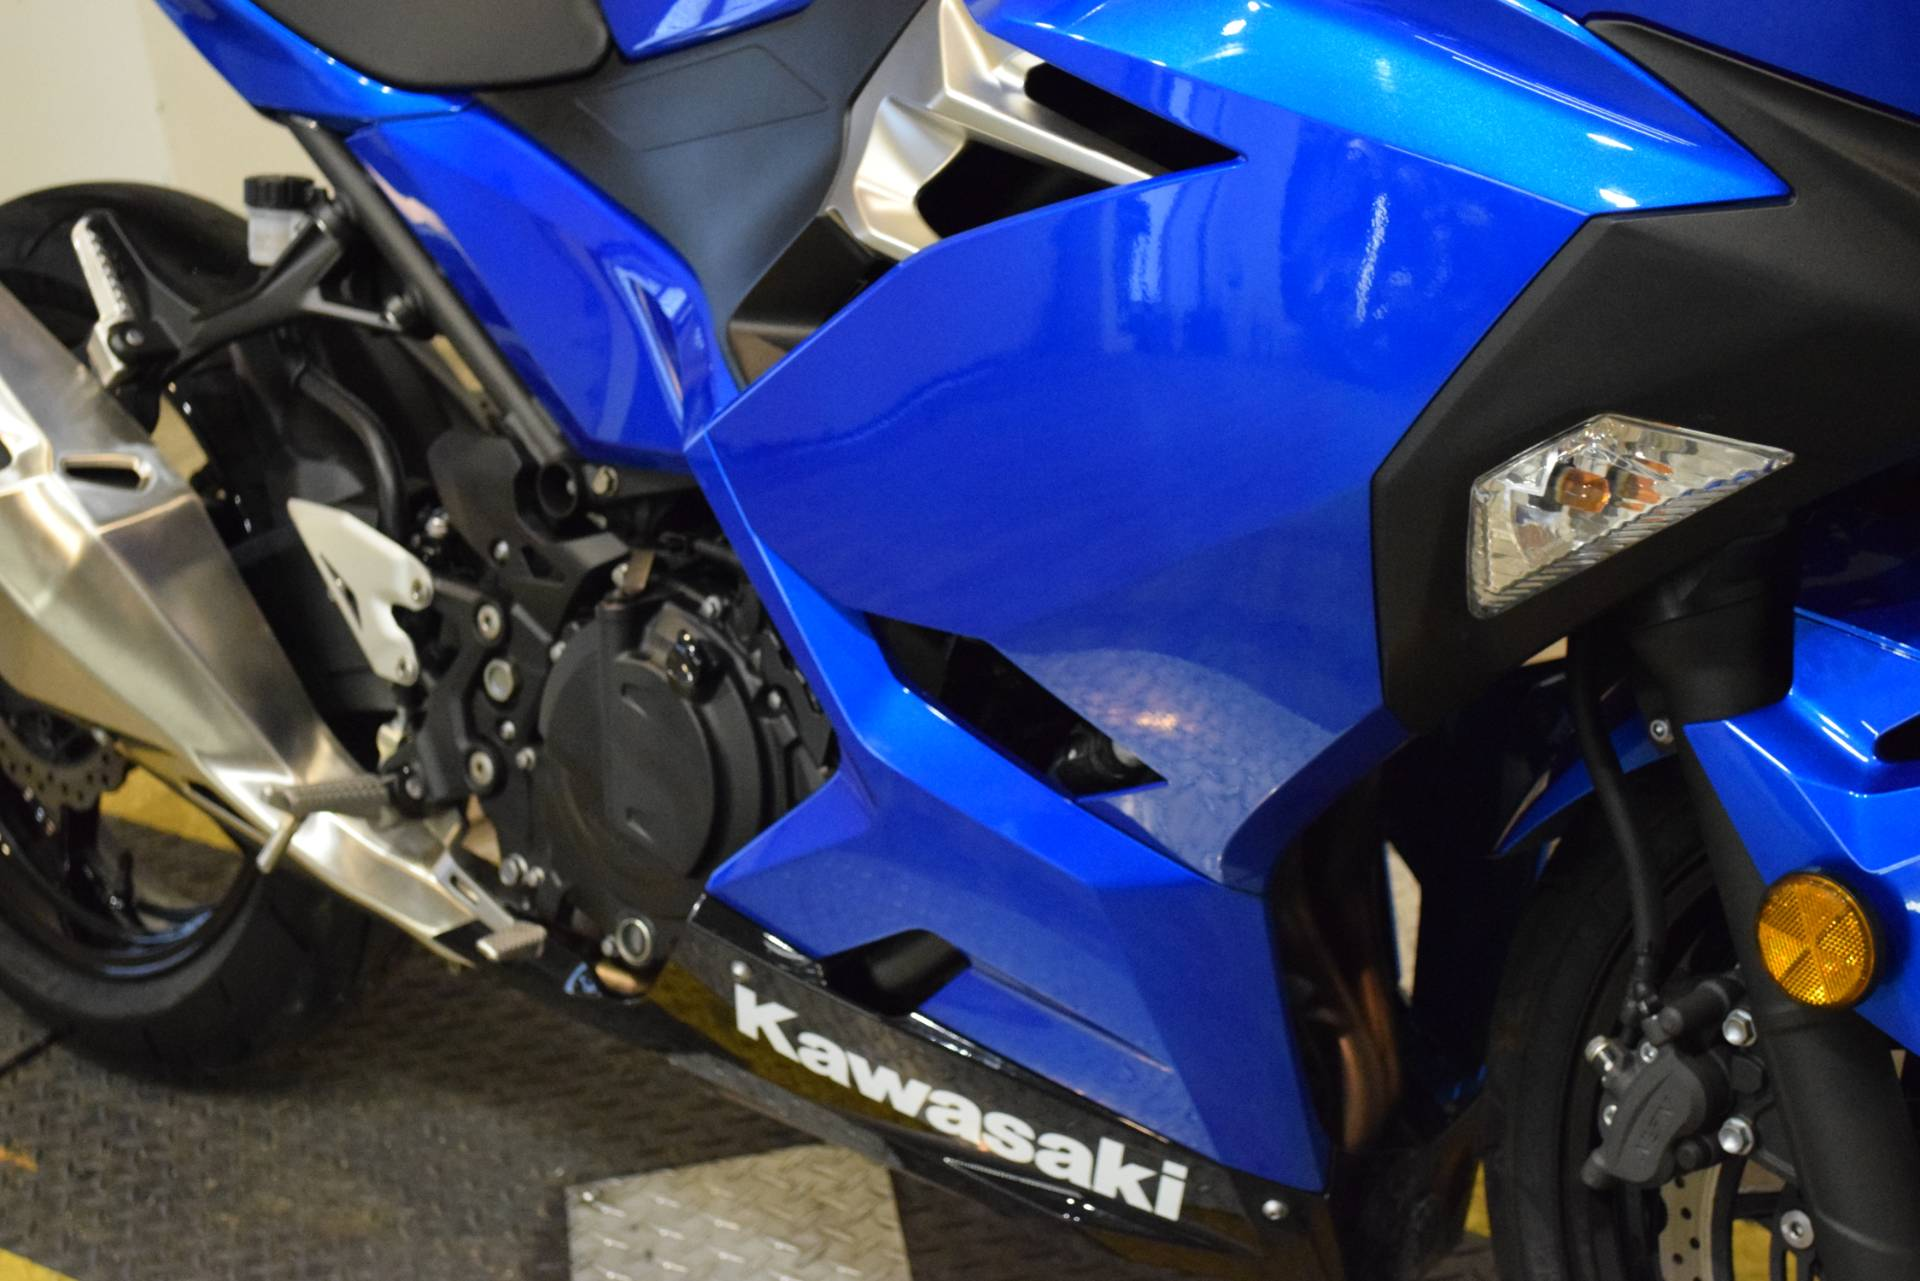 2018 Kawasaki Ninja 400 in Wauconda, Illinois - Photo 4